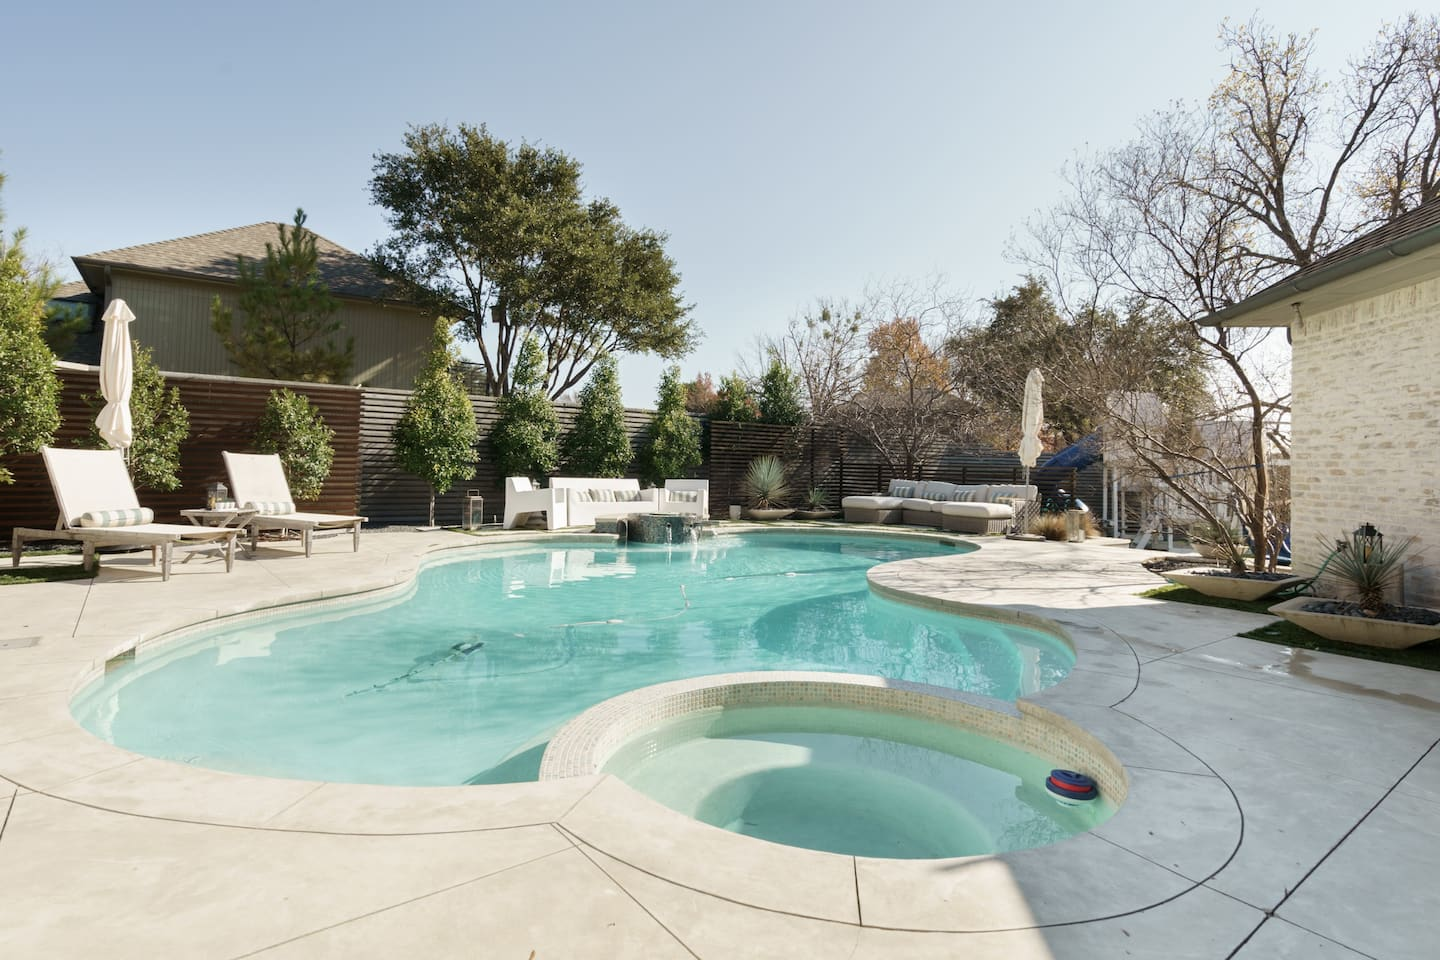 Luxury Airbnb in Dallas with Pool